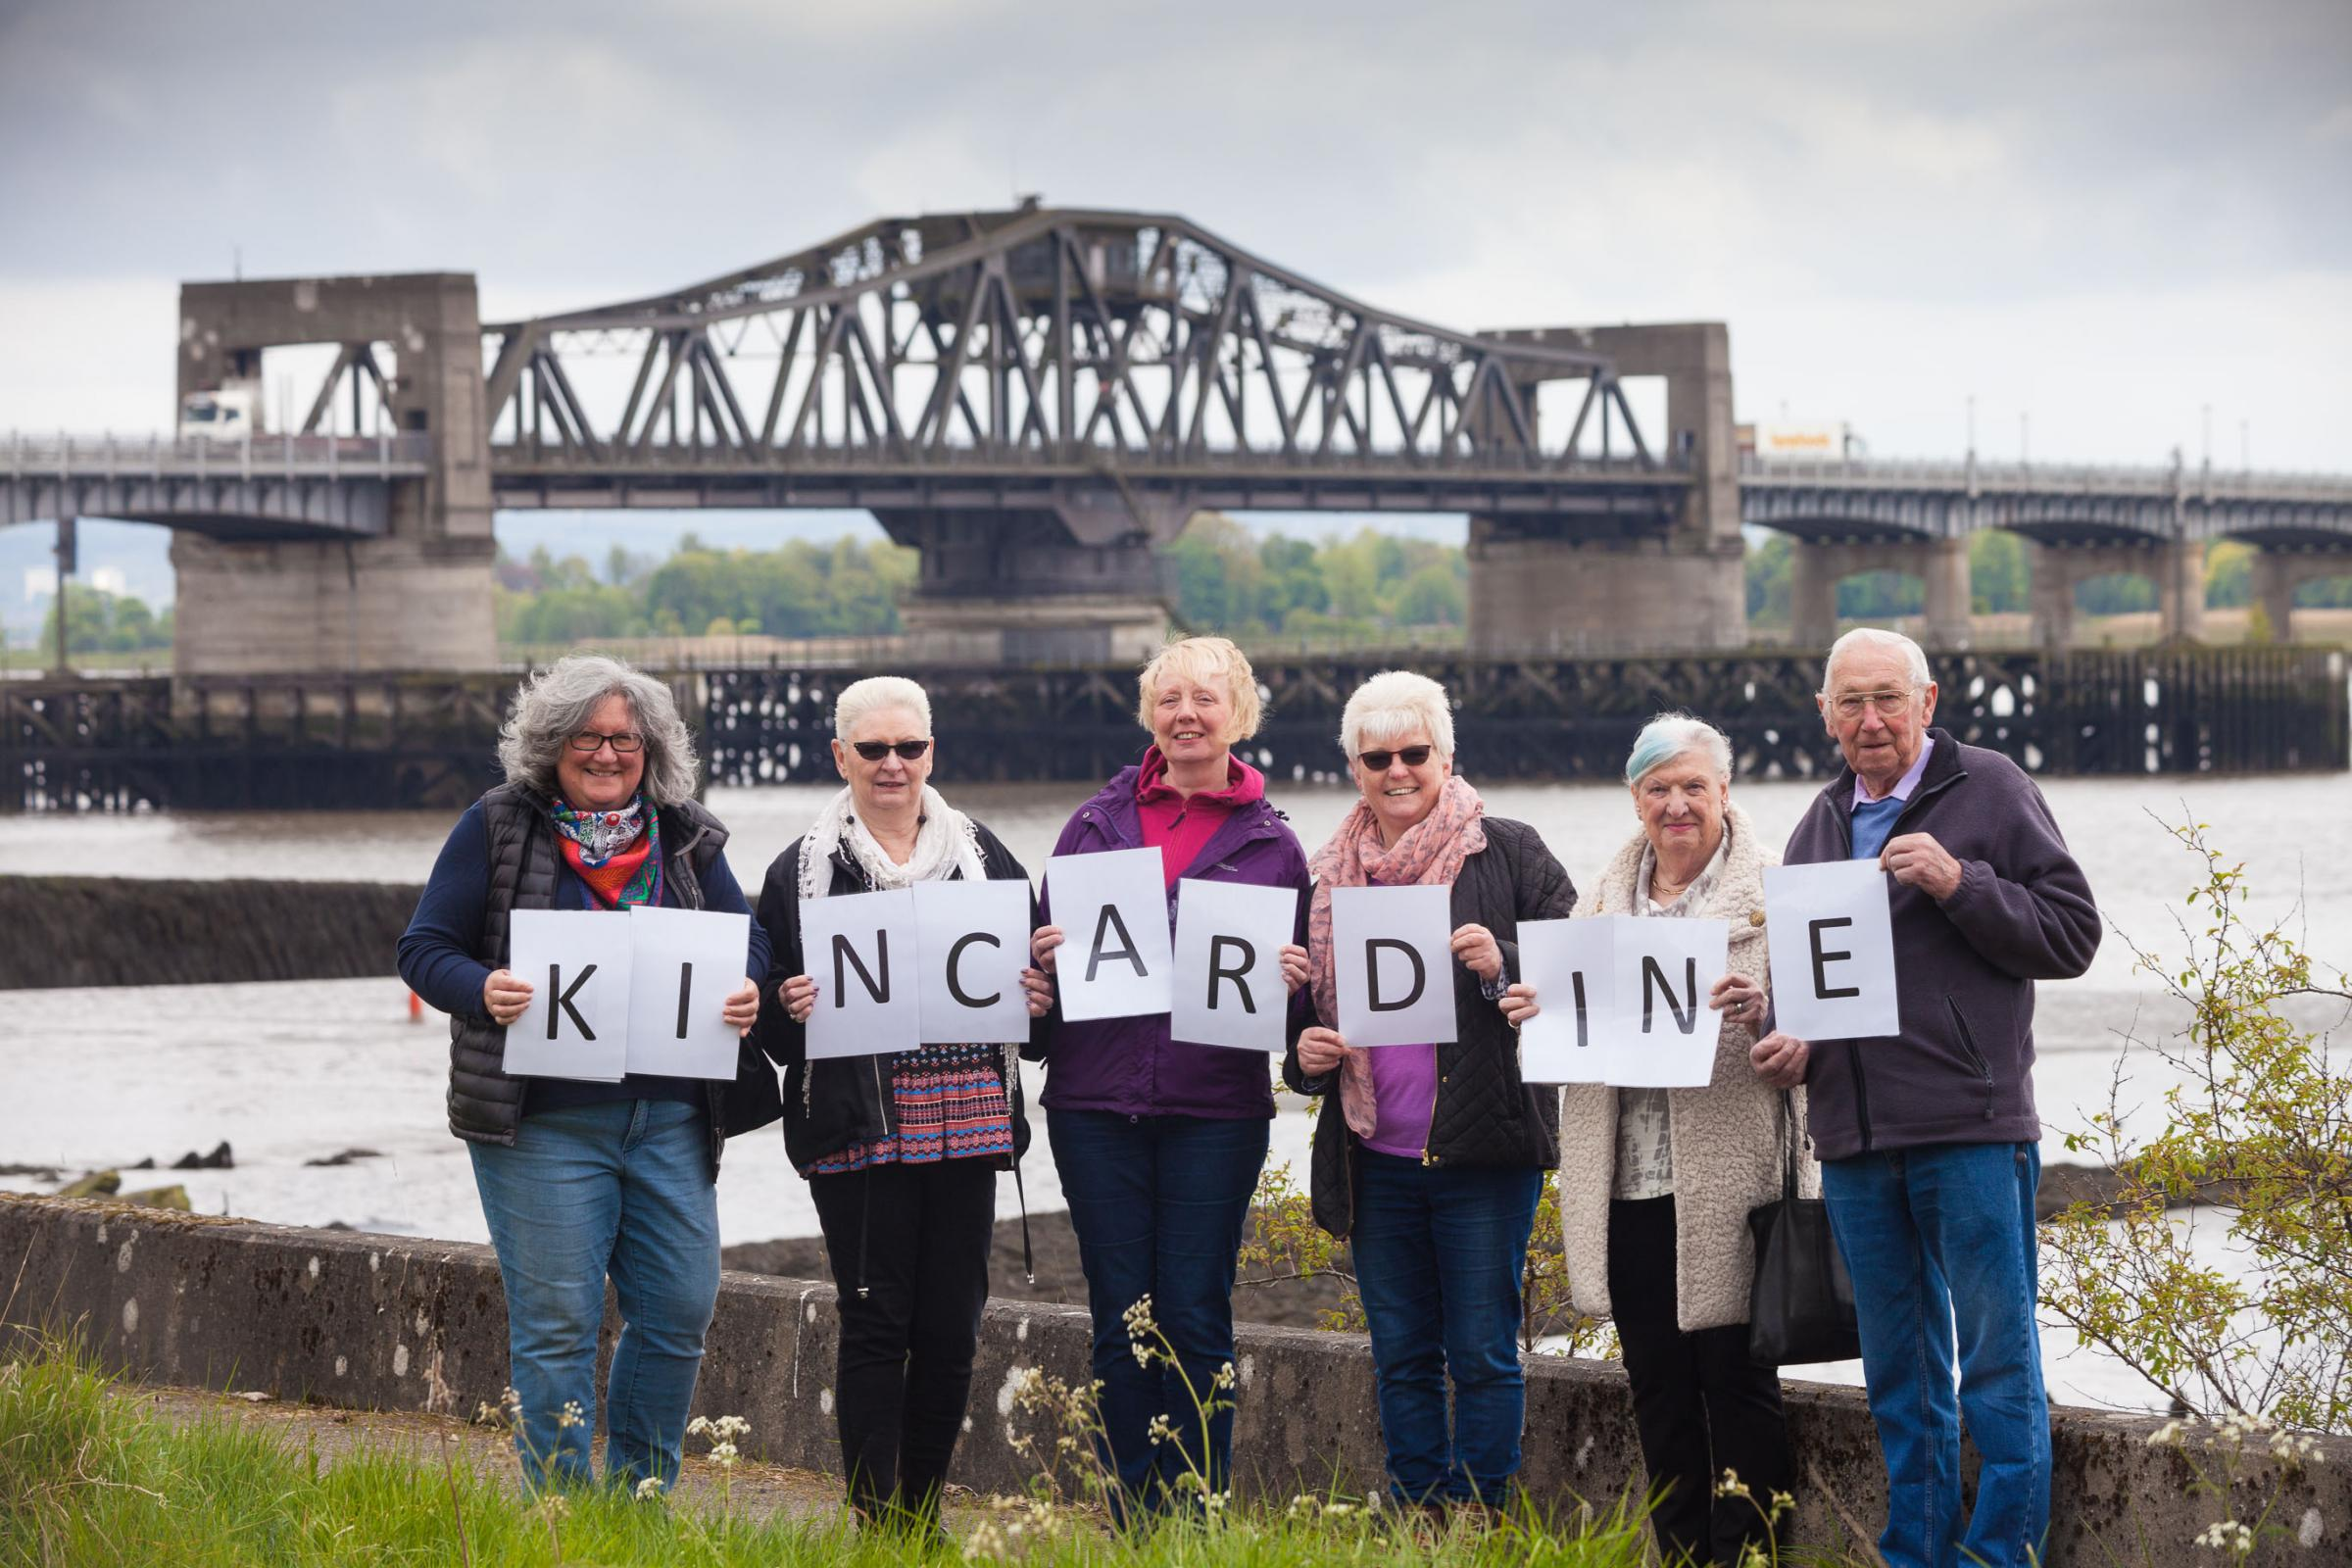 Residents in Kincardine will be asked to vote twice on June 8. Pictured are Janice McLaughlin, Pauline Douglas, Lesley Gavin, Enid Trevett, Mary Harley and Willie Anderson.